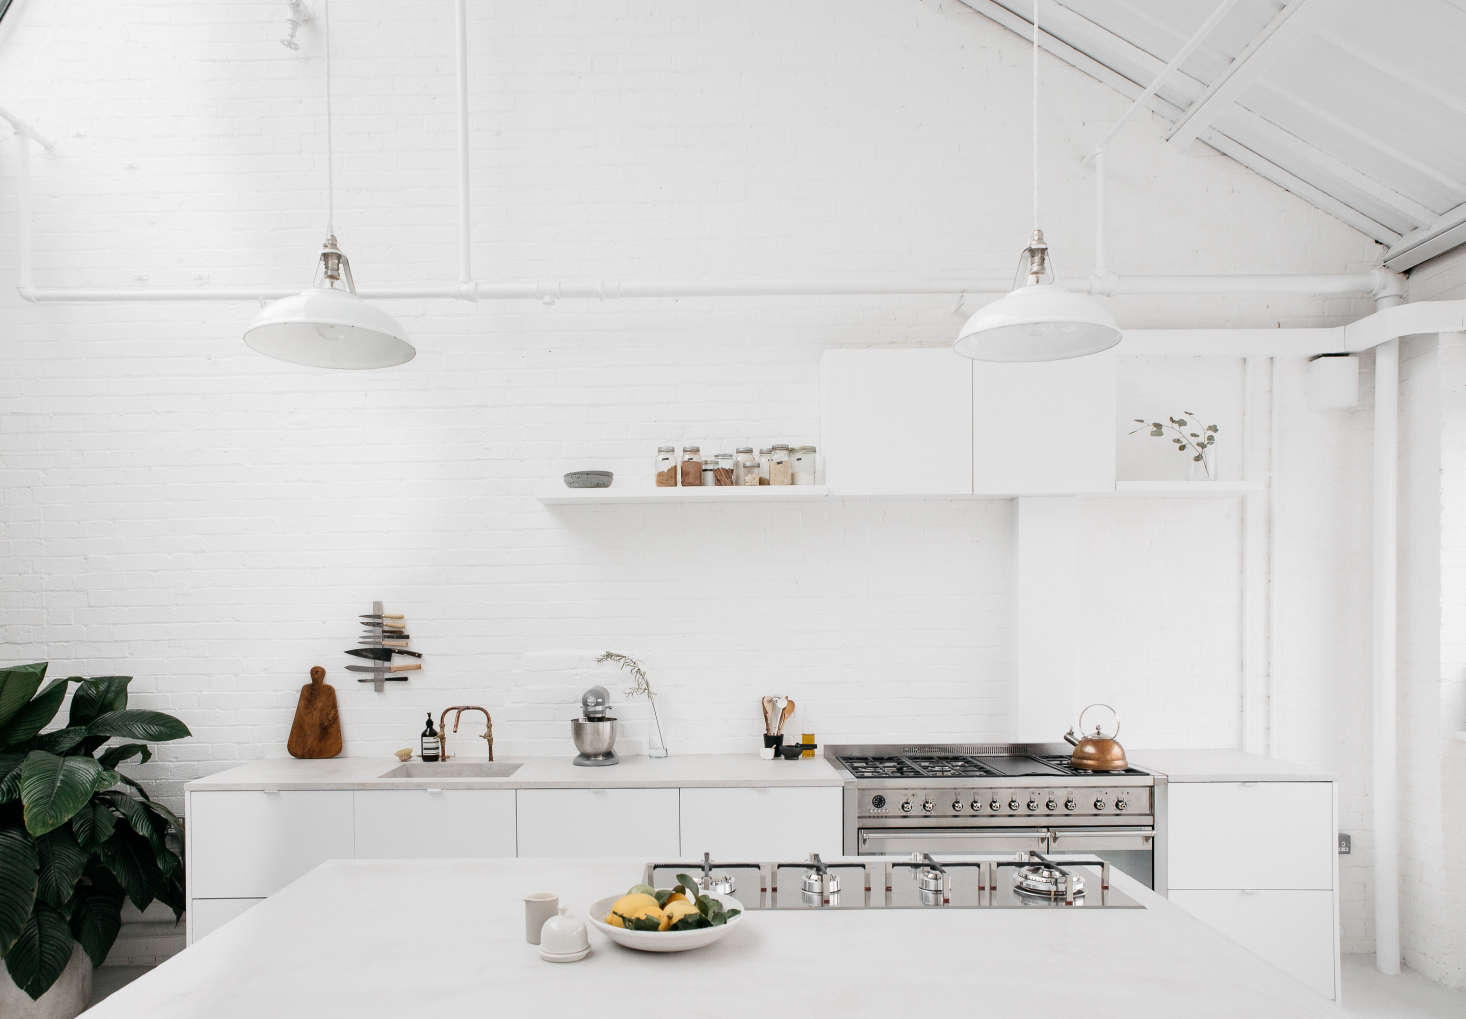 Photography Studio Rye London Was Built With Ikea S Kitchen Cabinet System It Has Really